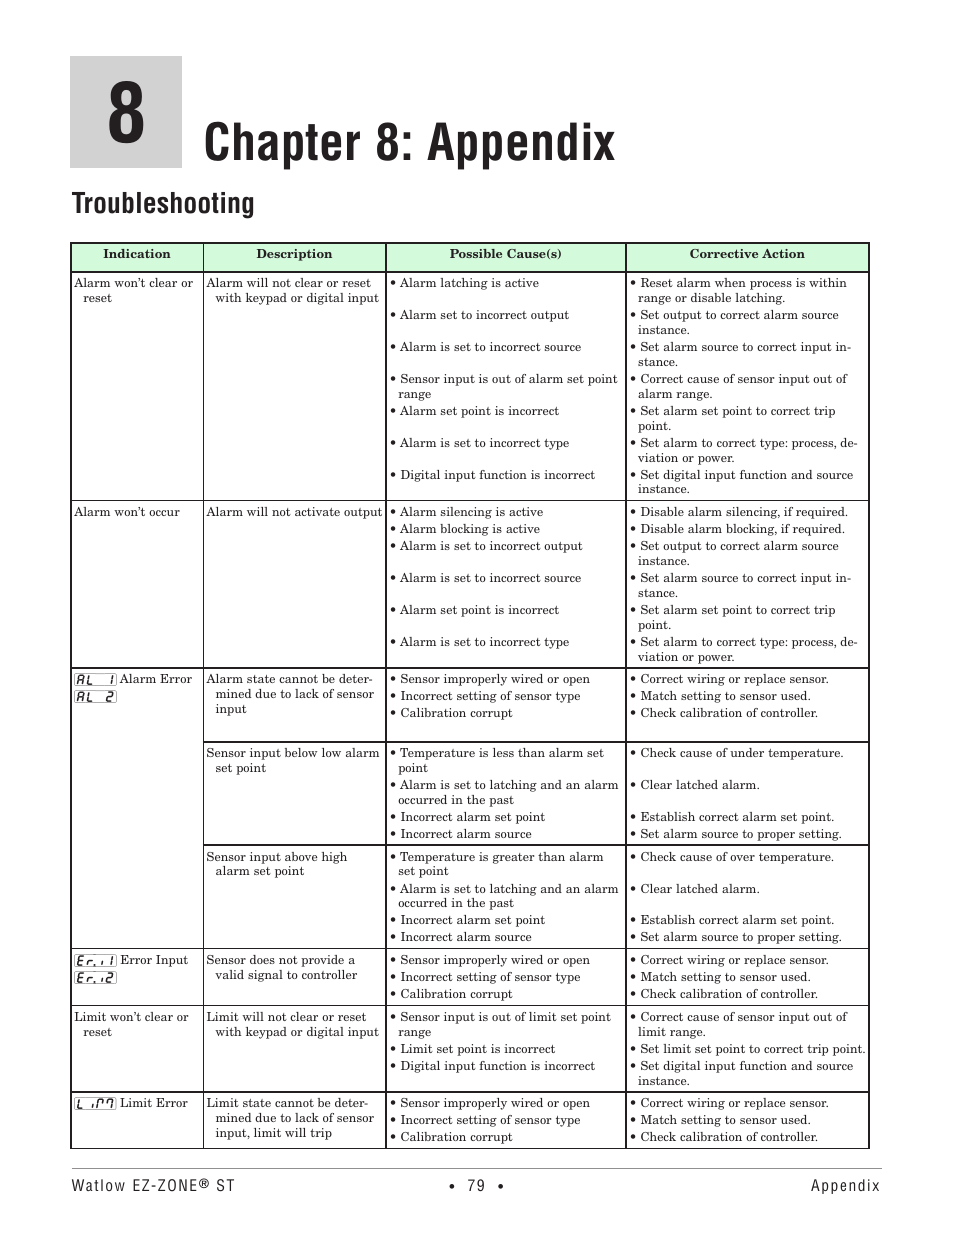 Chapter 8: appendix, Troubleshooting | Watlow EZ-ZONE ST User Manual | Page